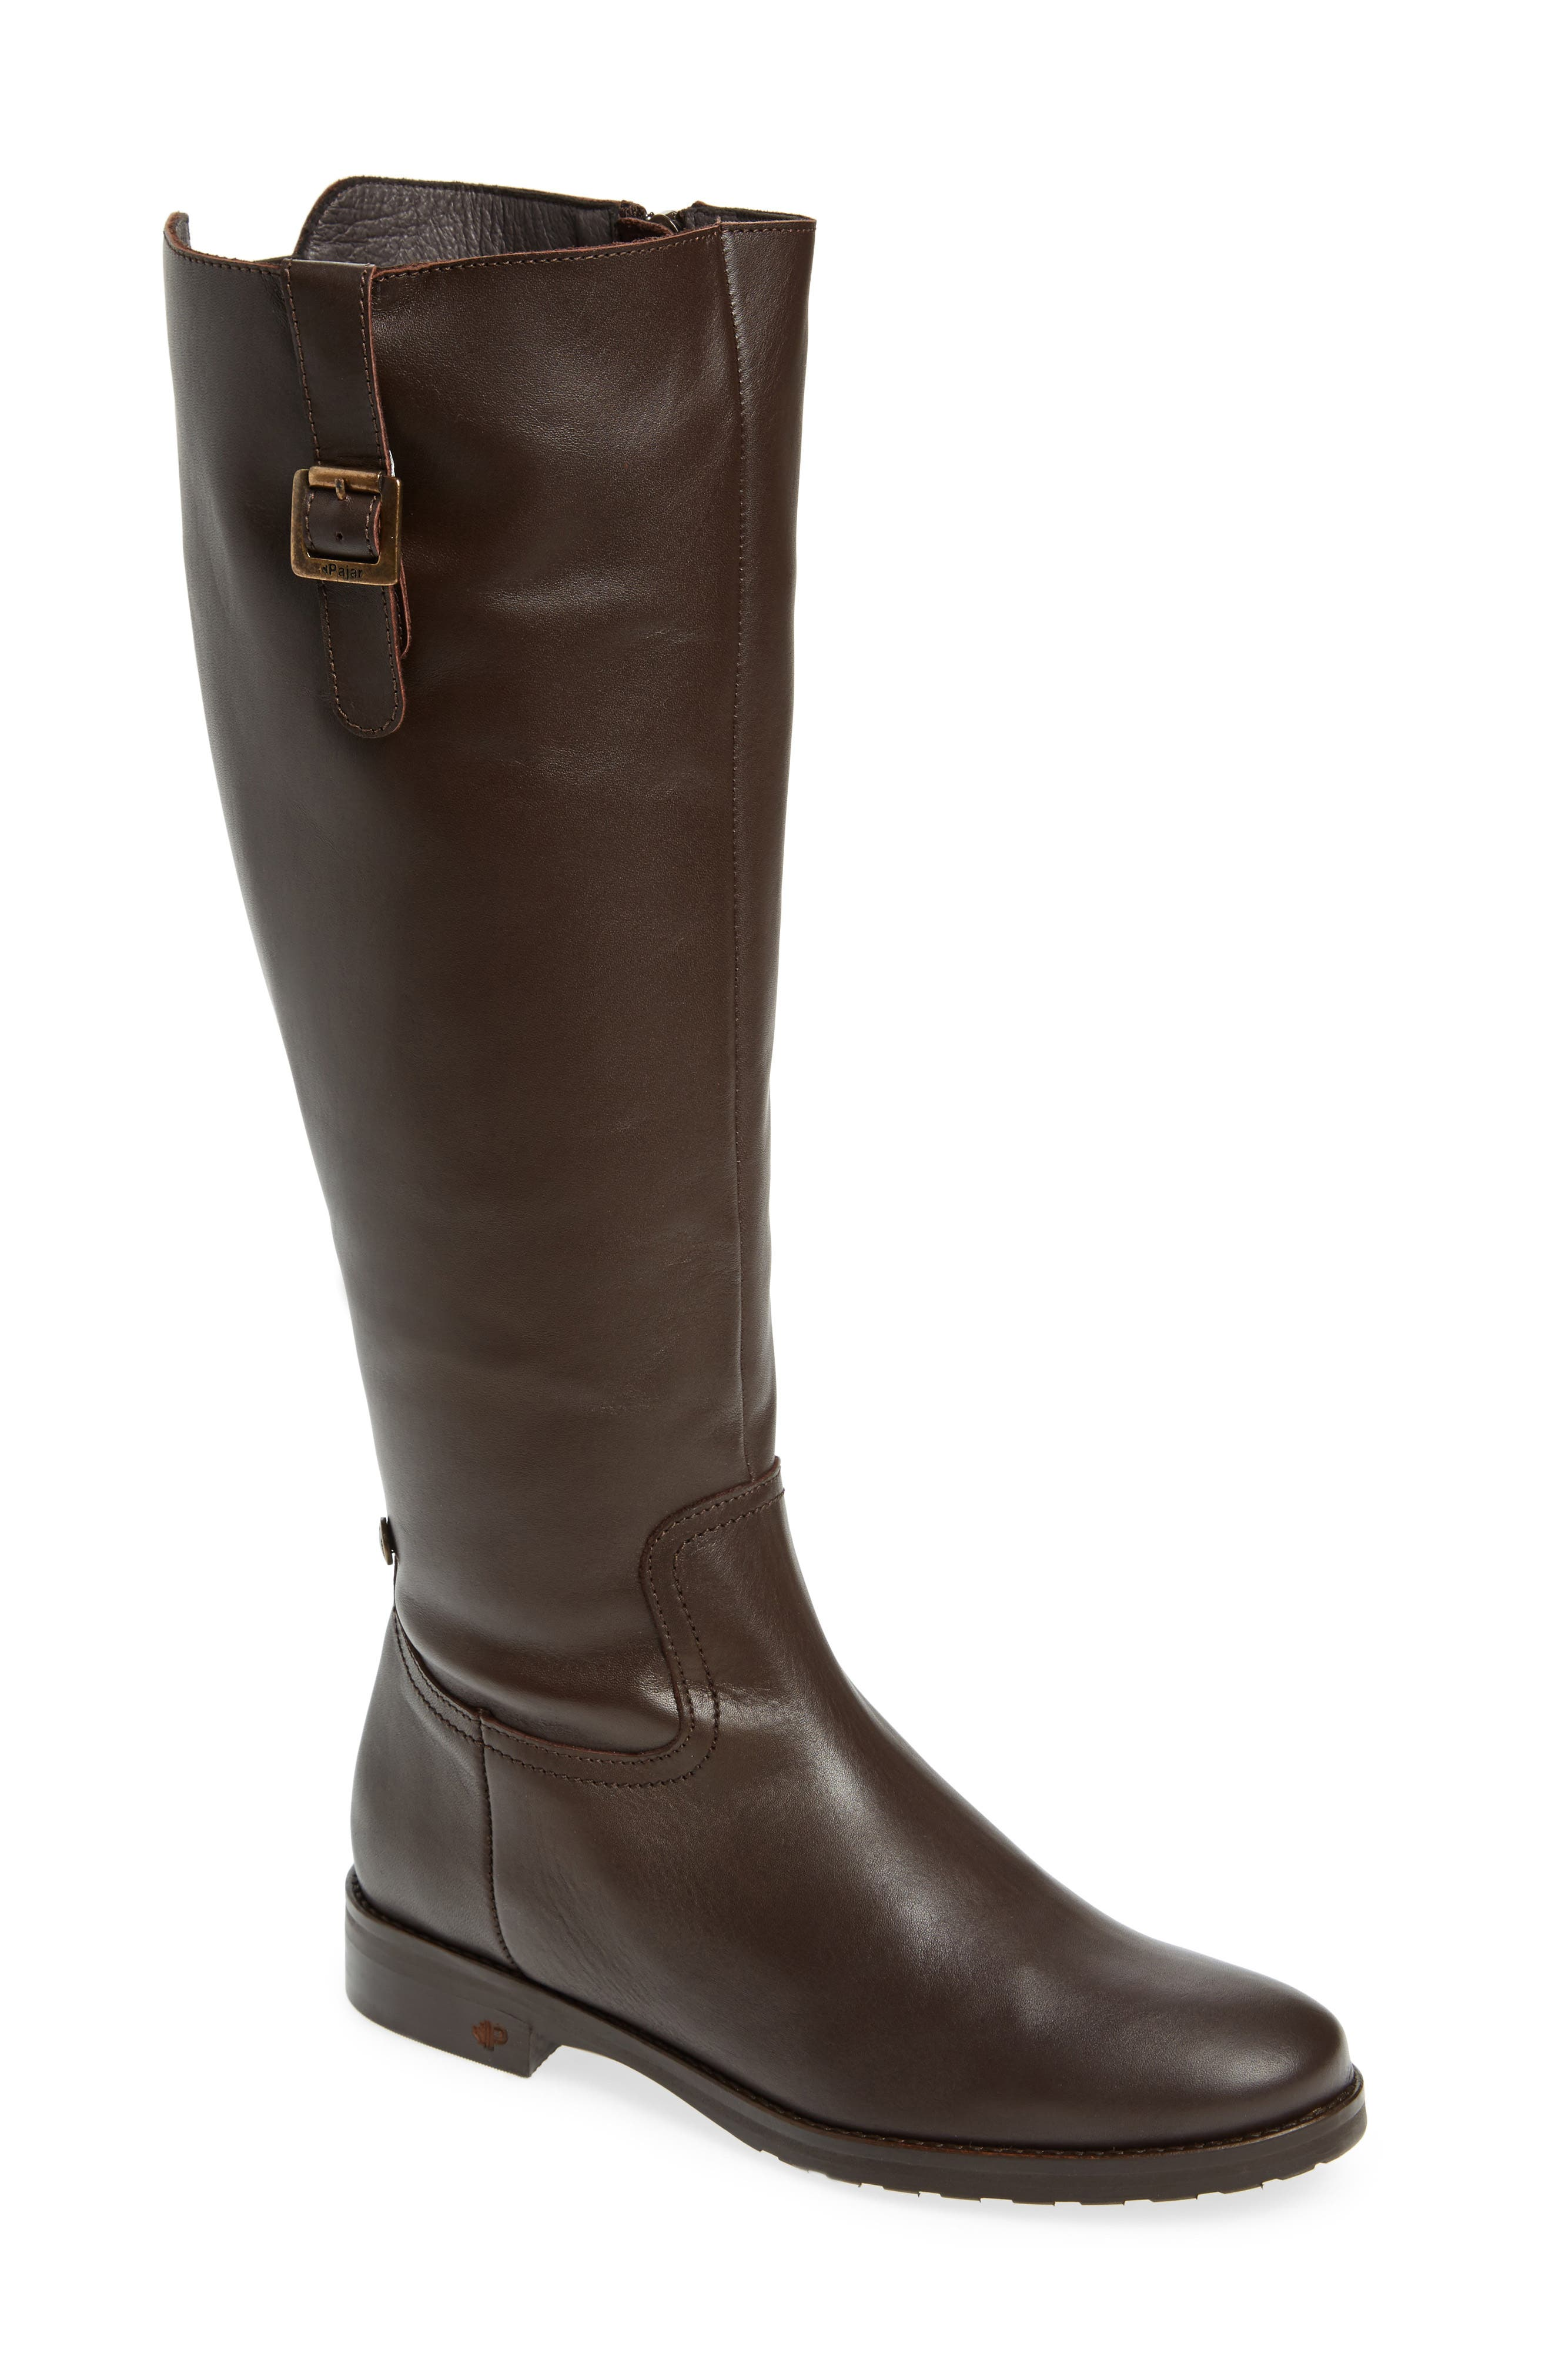 Anson Waterproof Boot,                         Main,                         color, Brown Leather